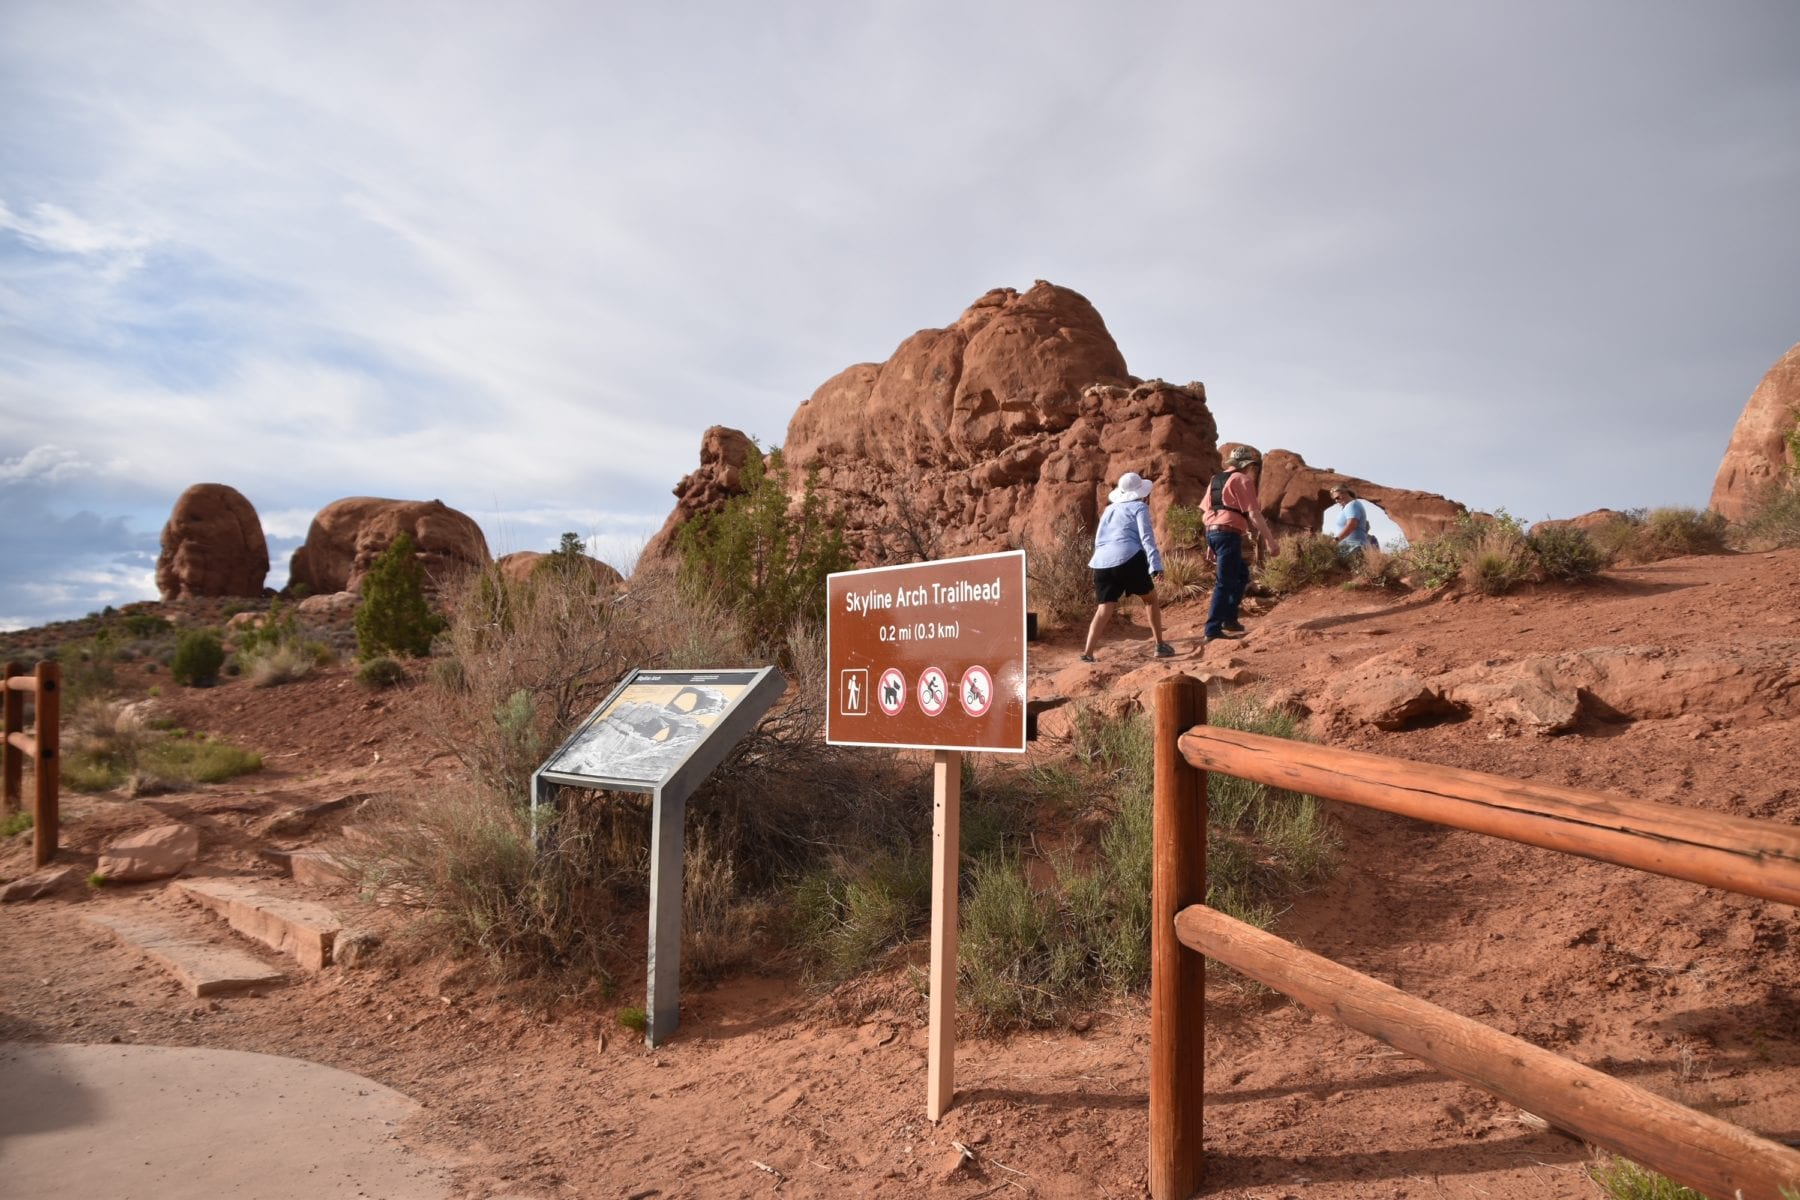 Skyline Trail at Arches National Park